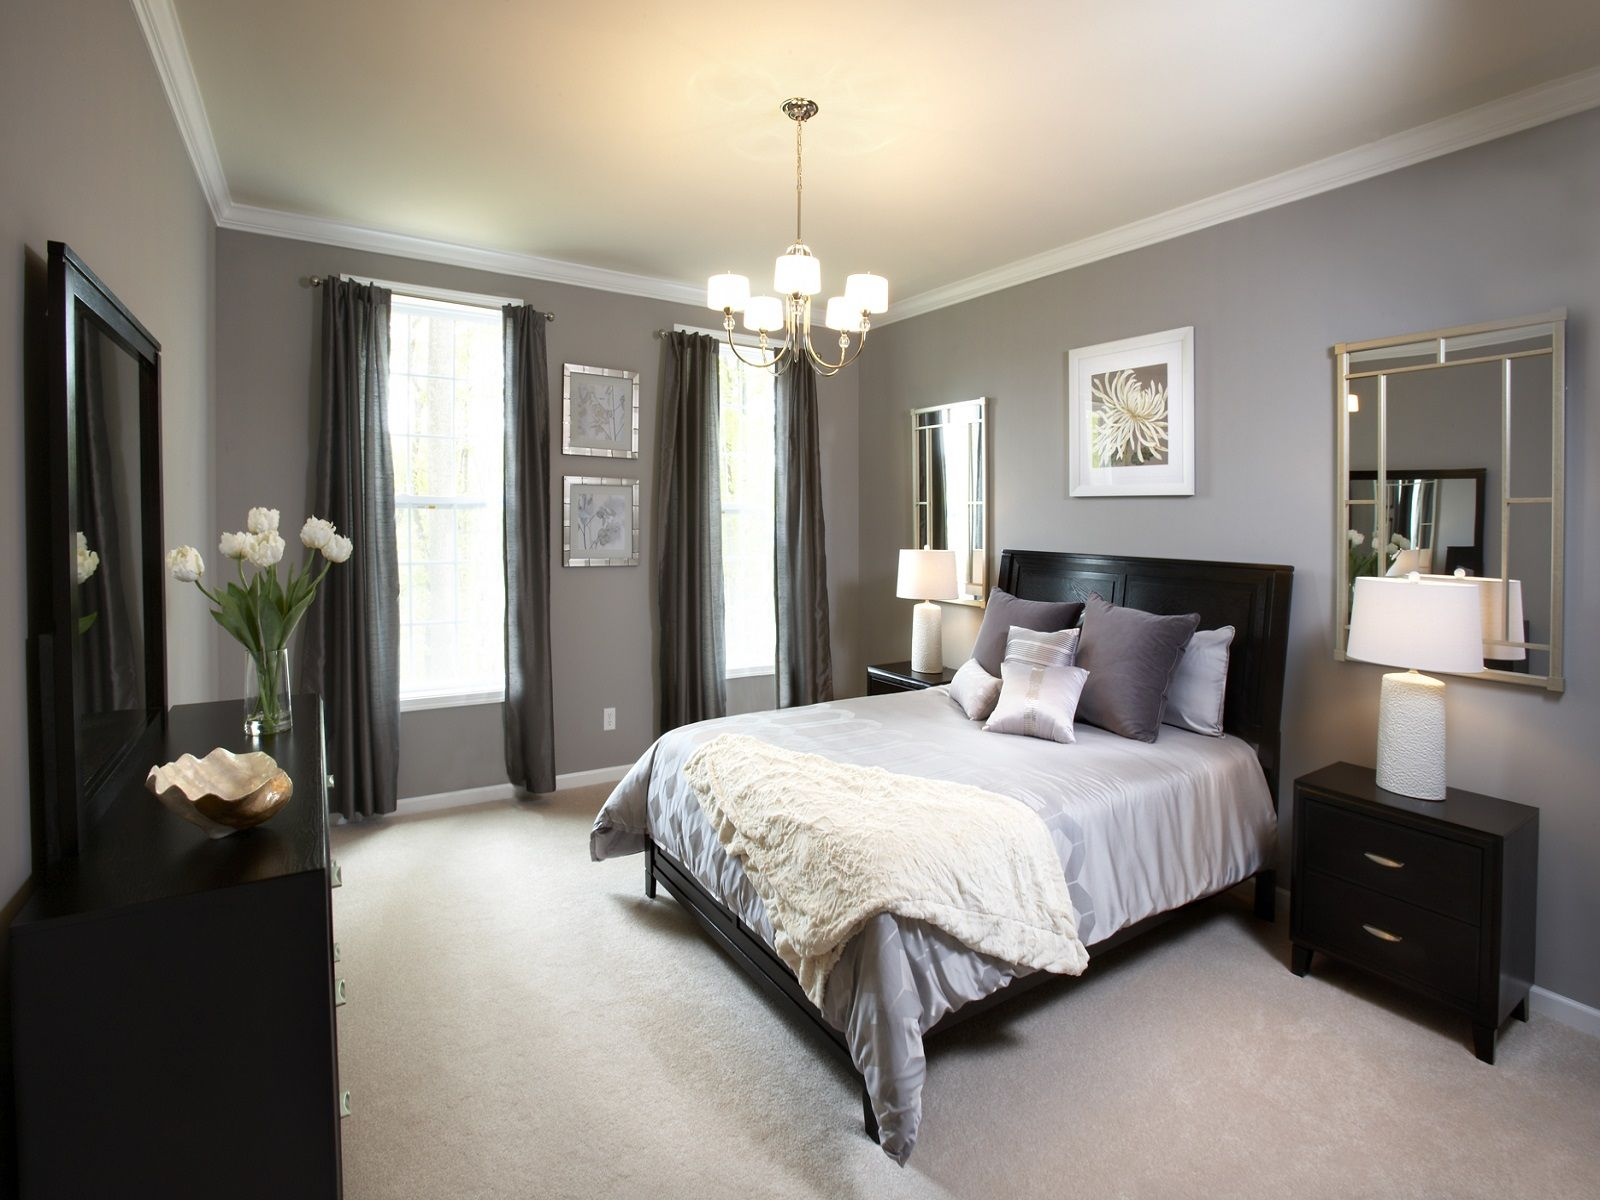 Model Home Tour  Gray master bedroom, Remodel bedroom, Master